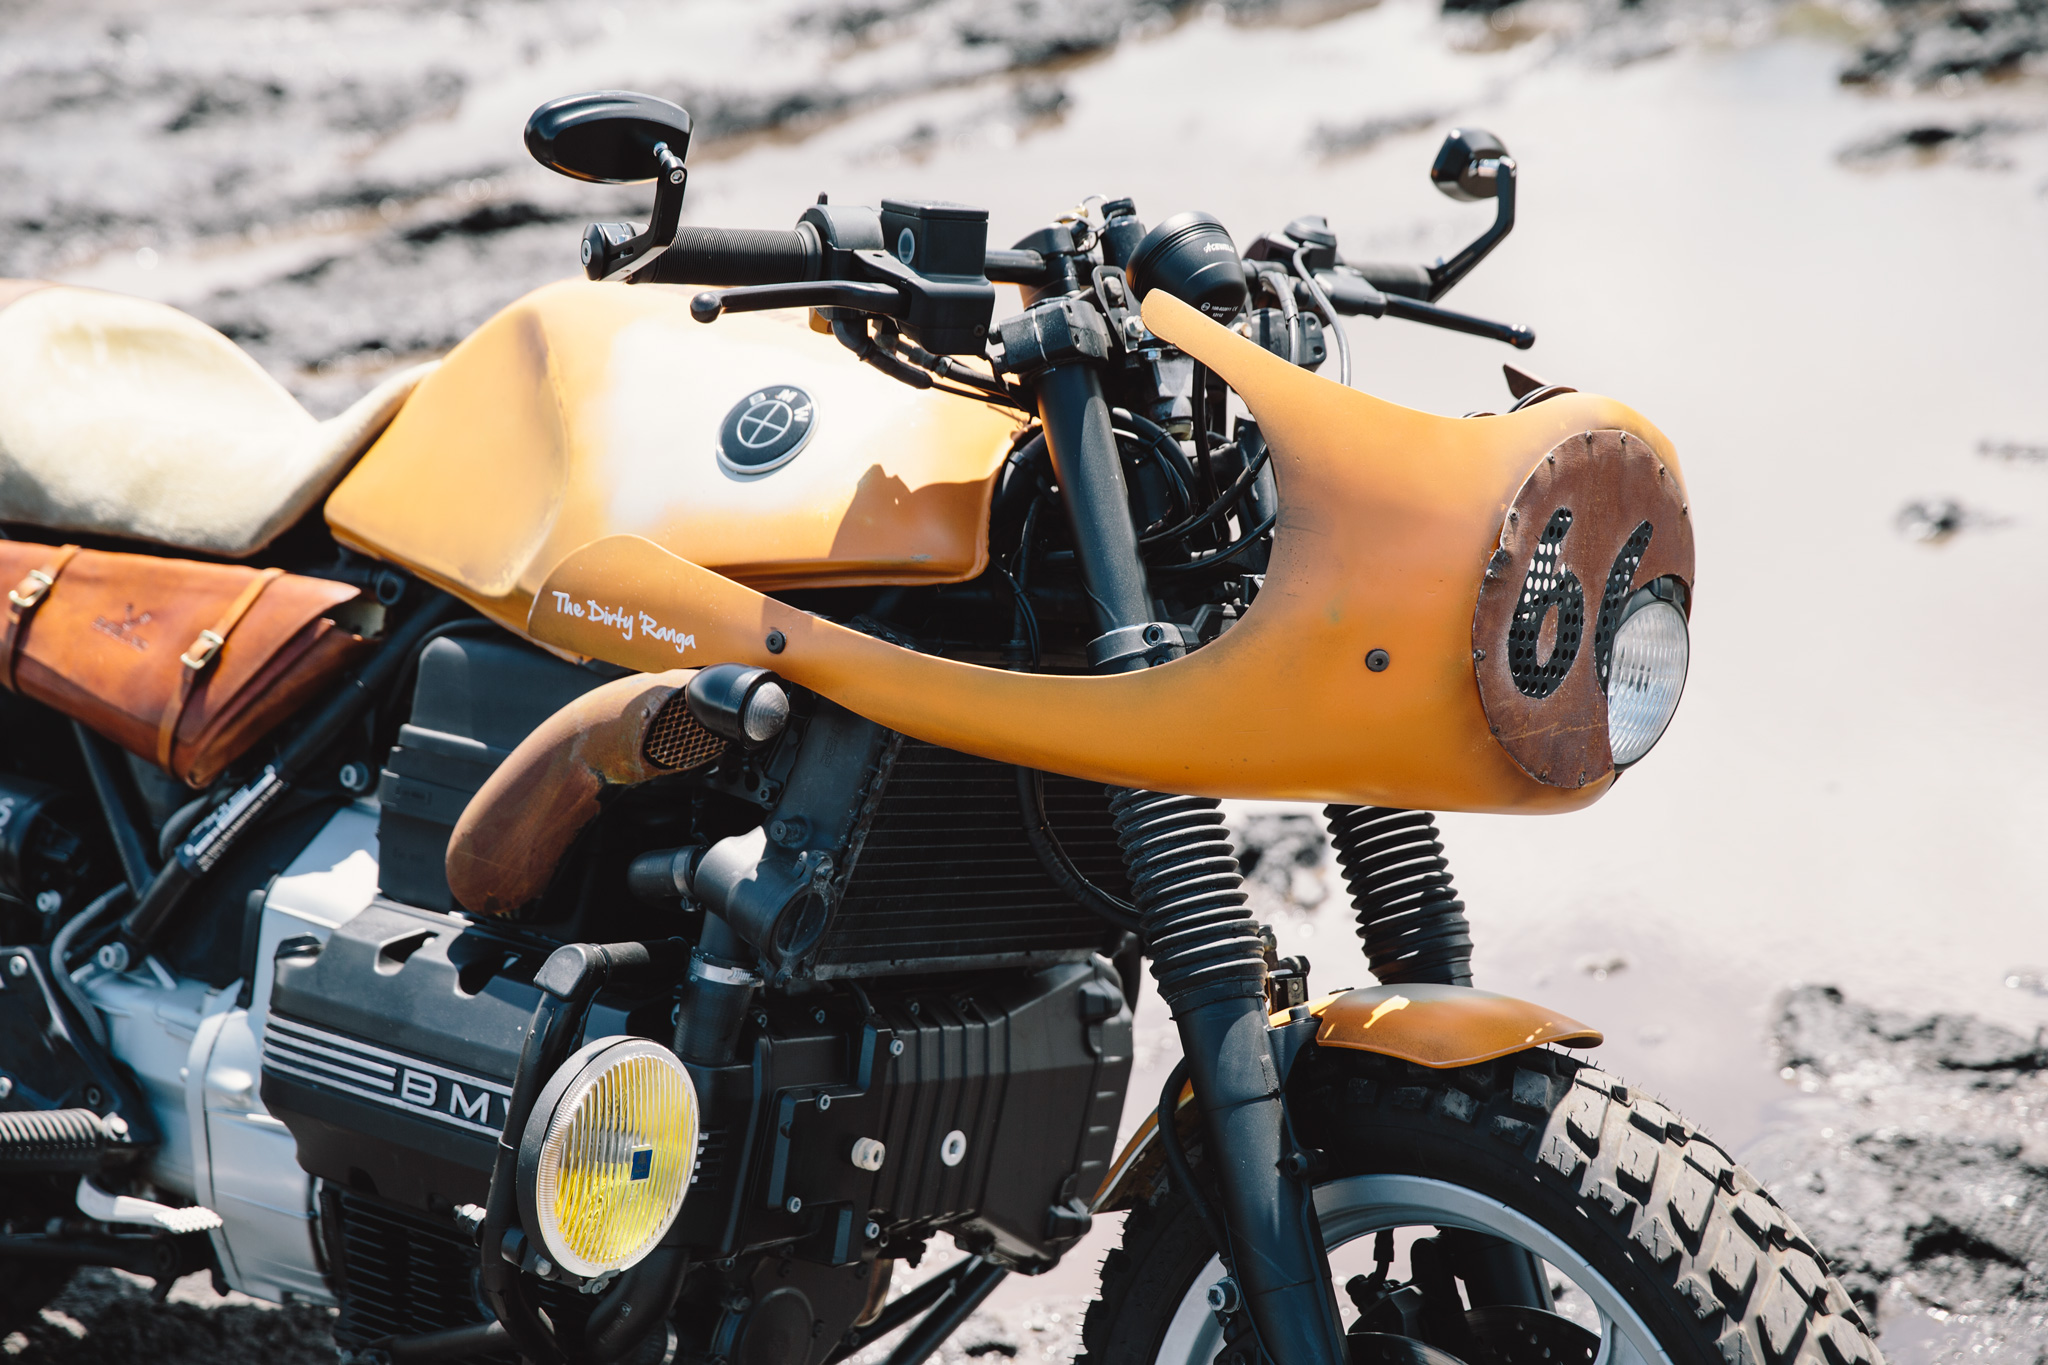 bmw_k1100_tracker_cafe_racer-149